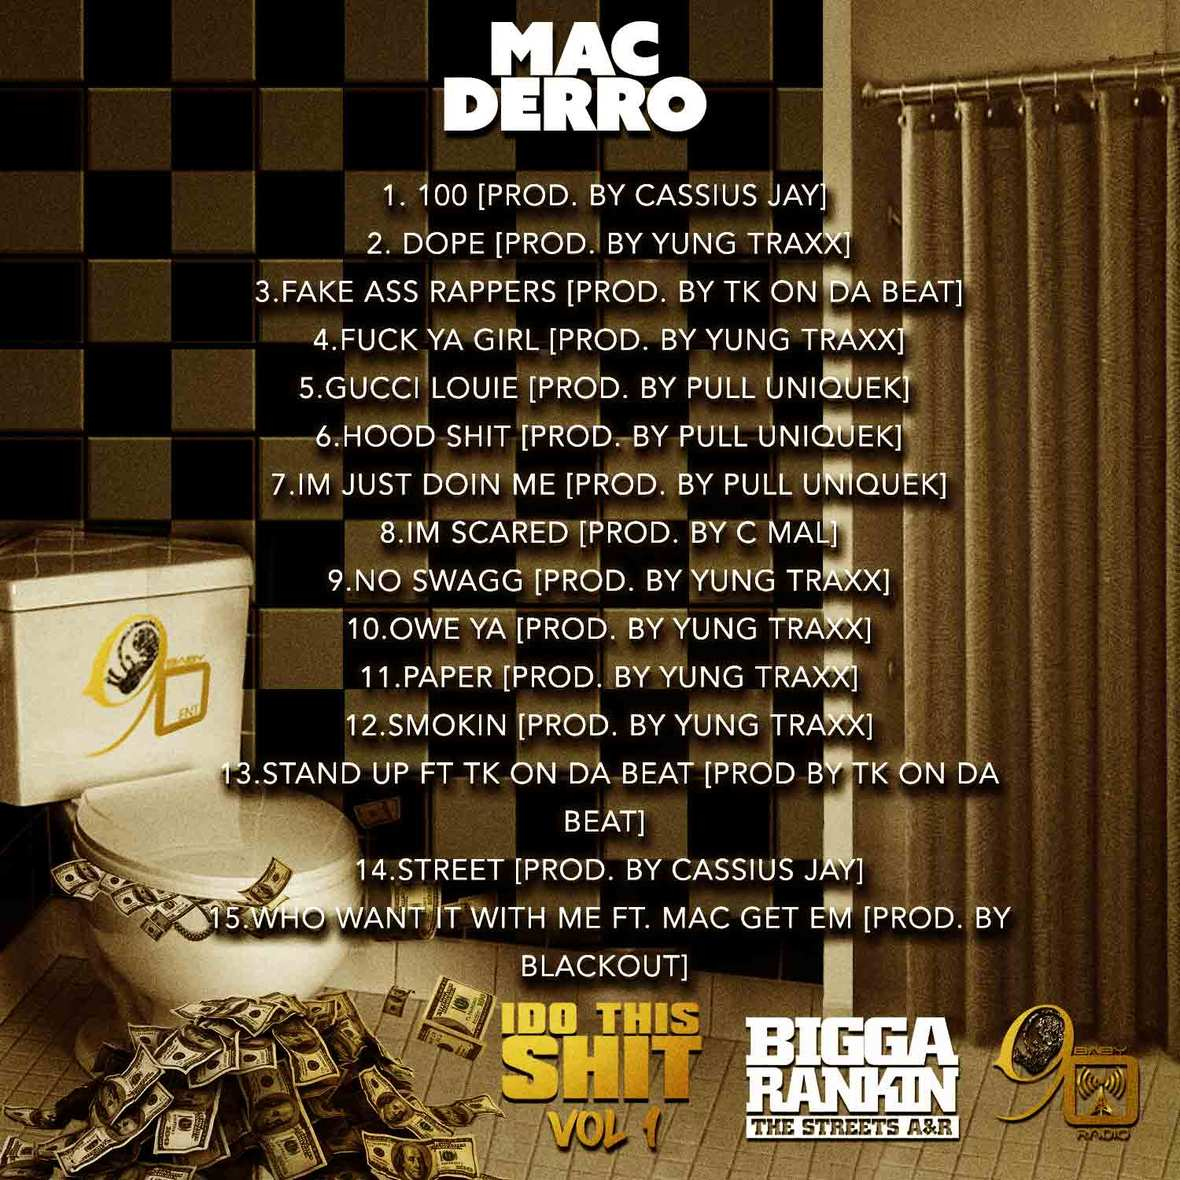 Mac Derro - Do This Shit Vol 1 Back Cover